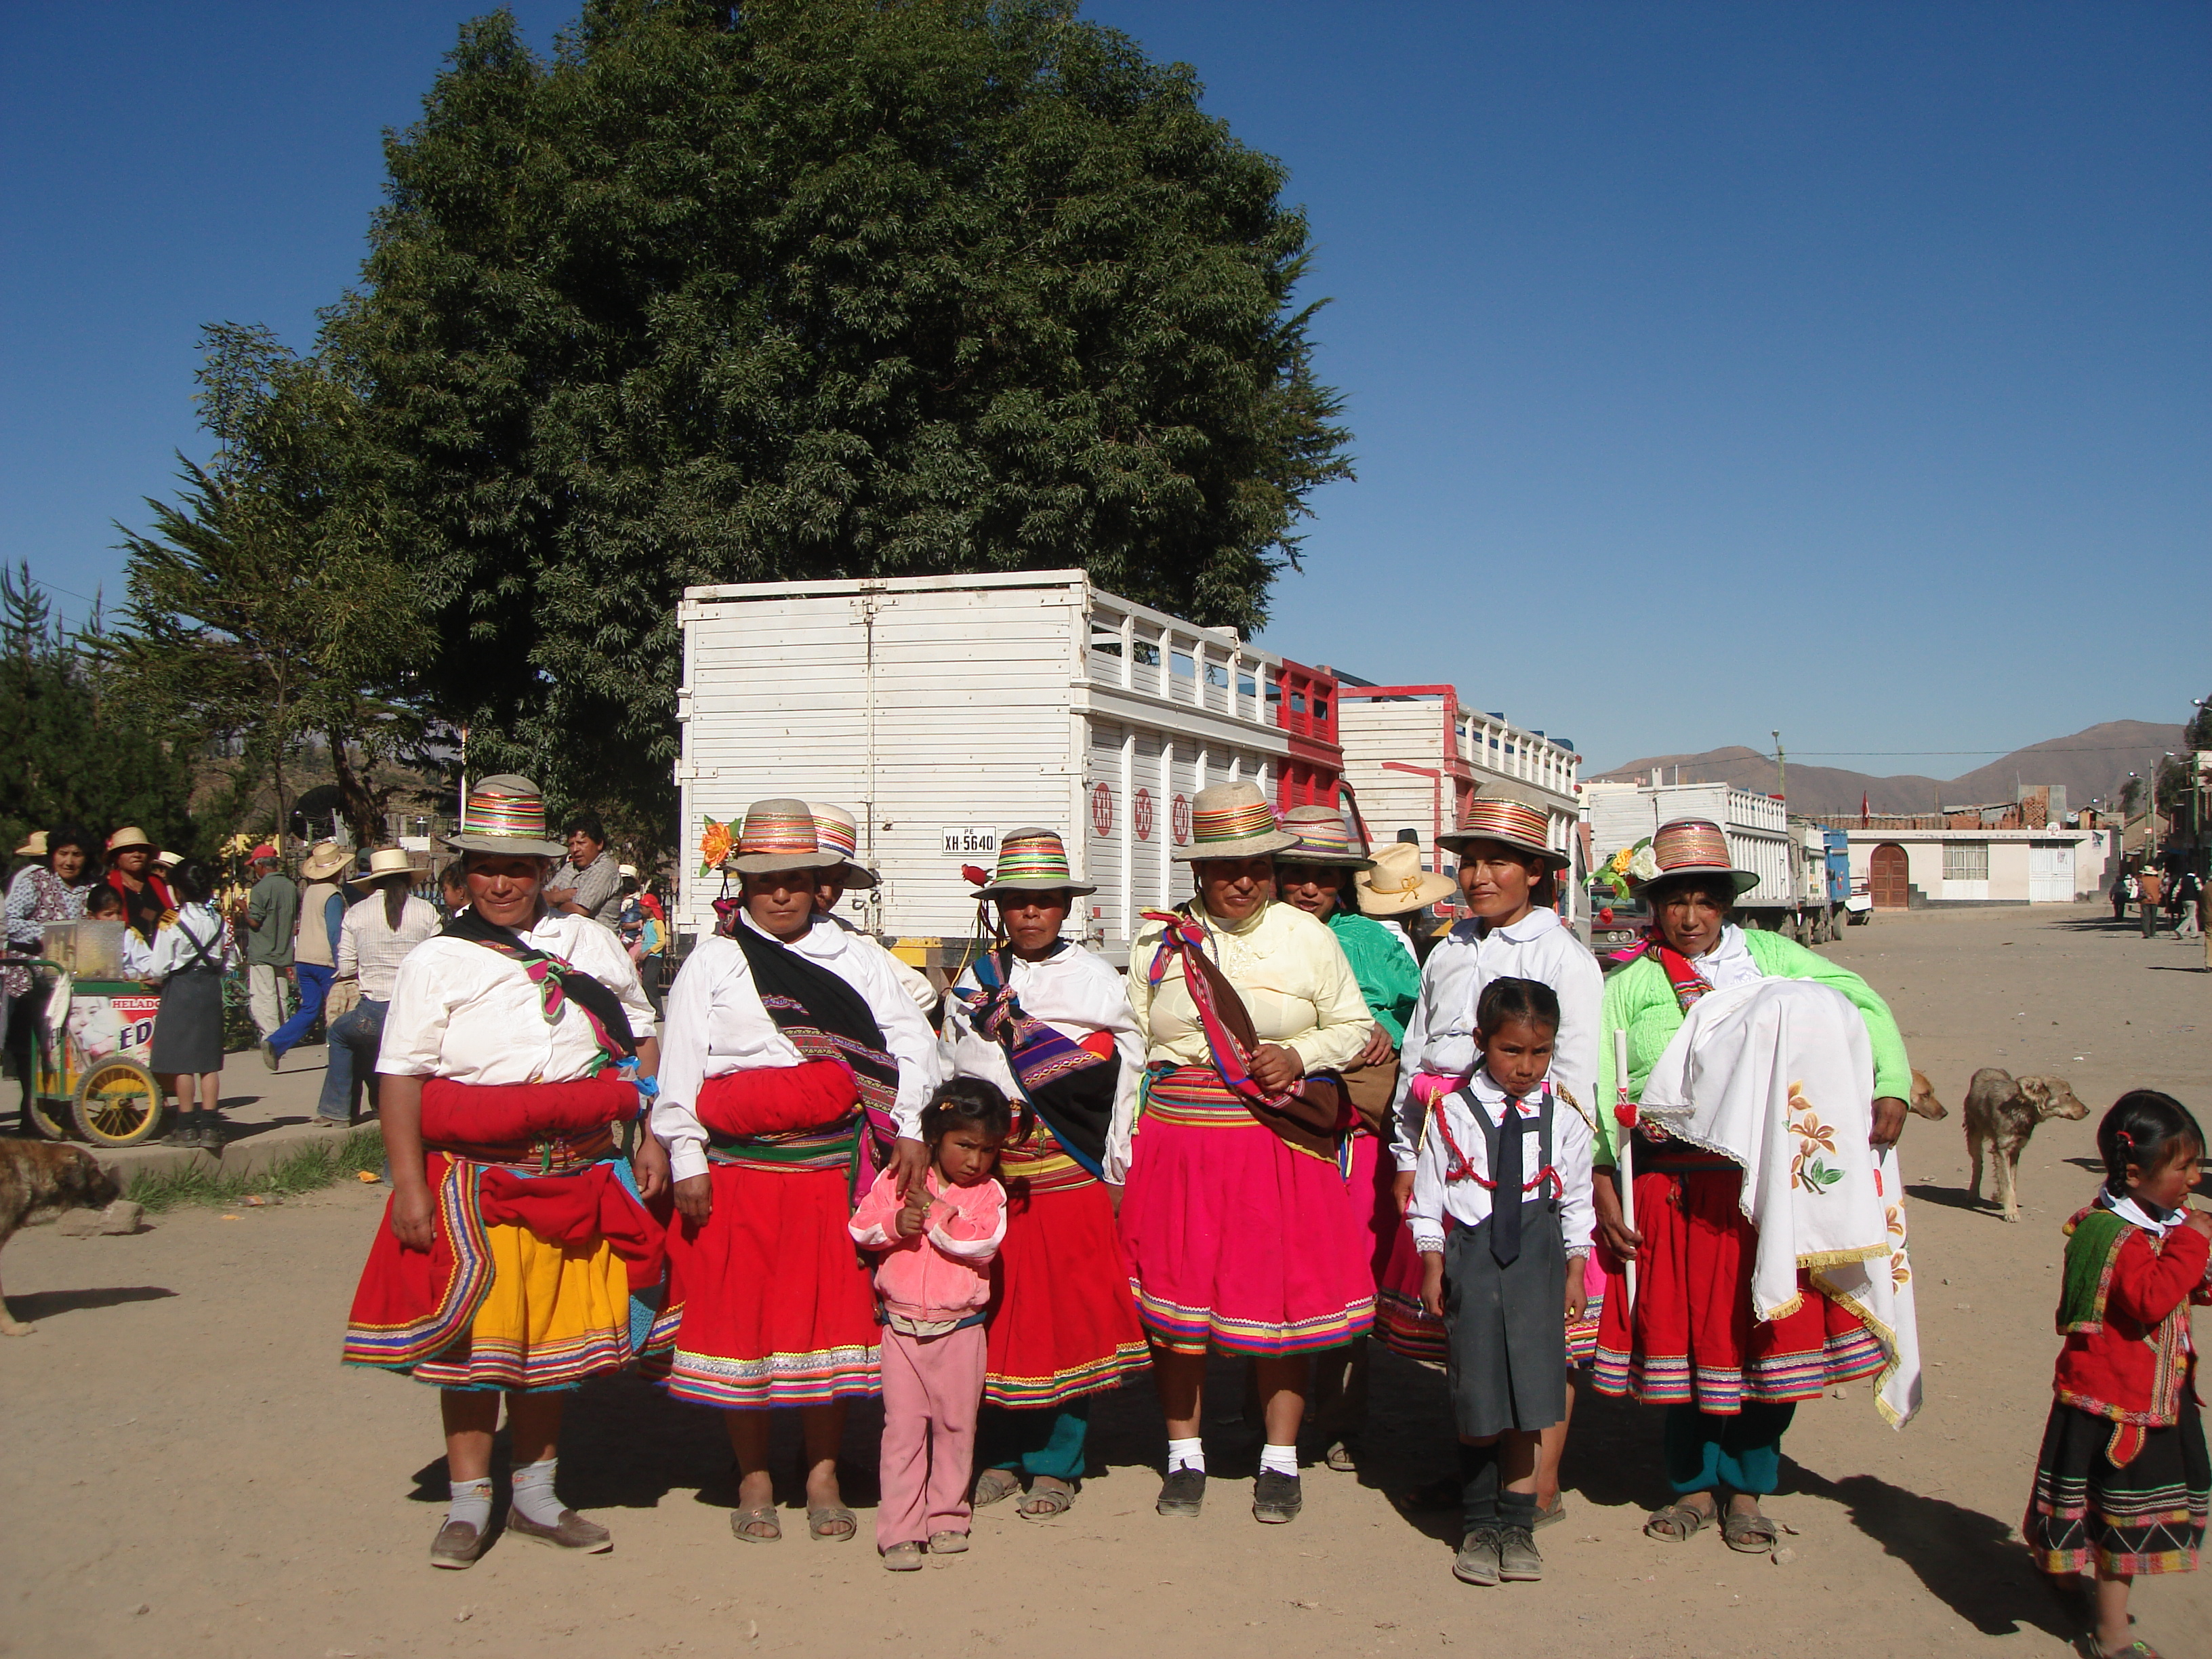 Indian people from Tuhuallqui en Pampacolca